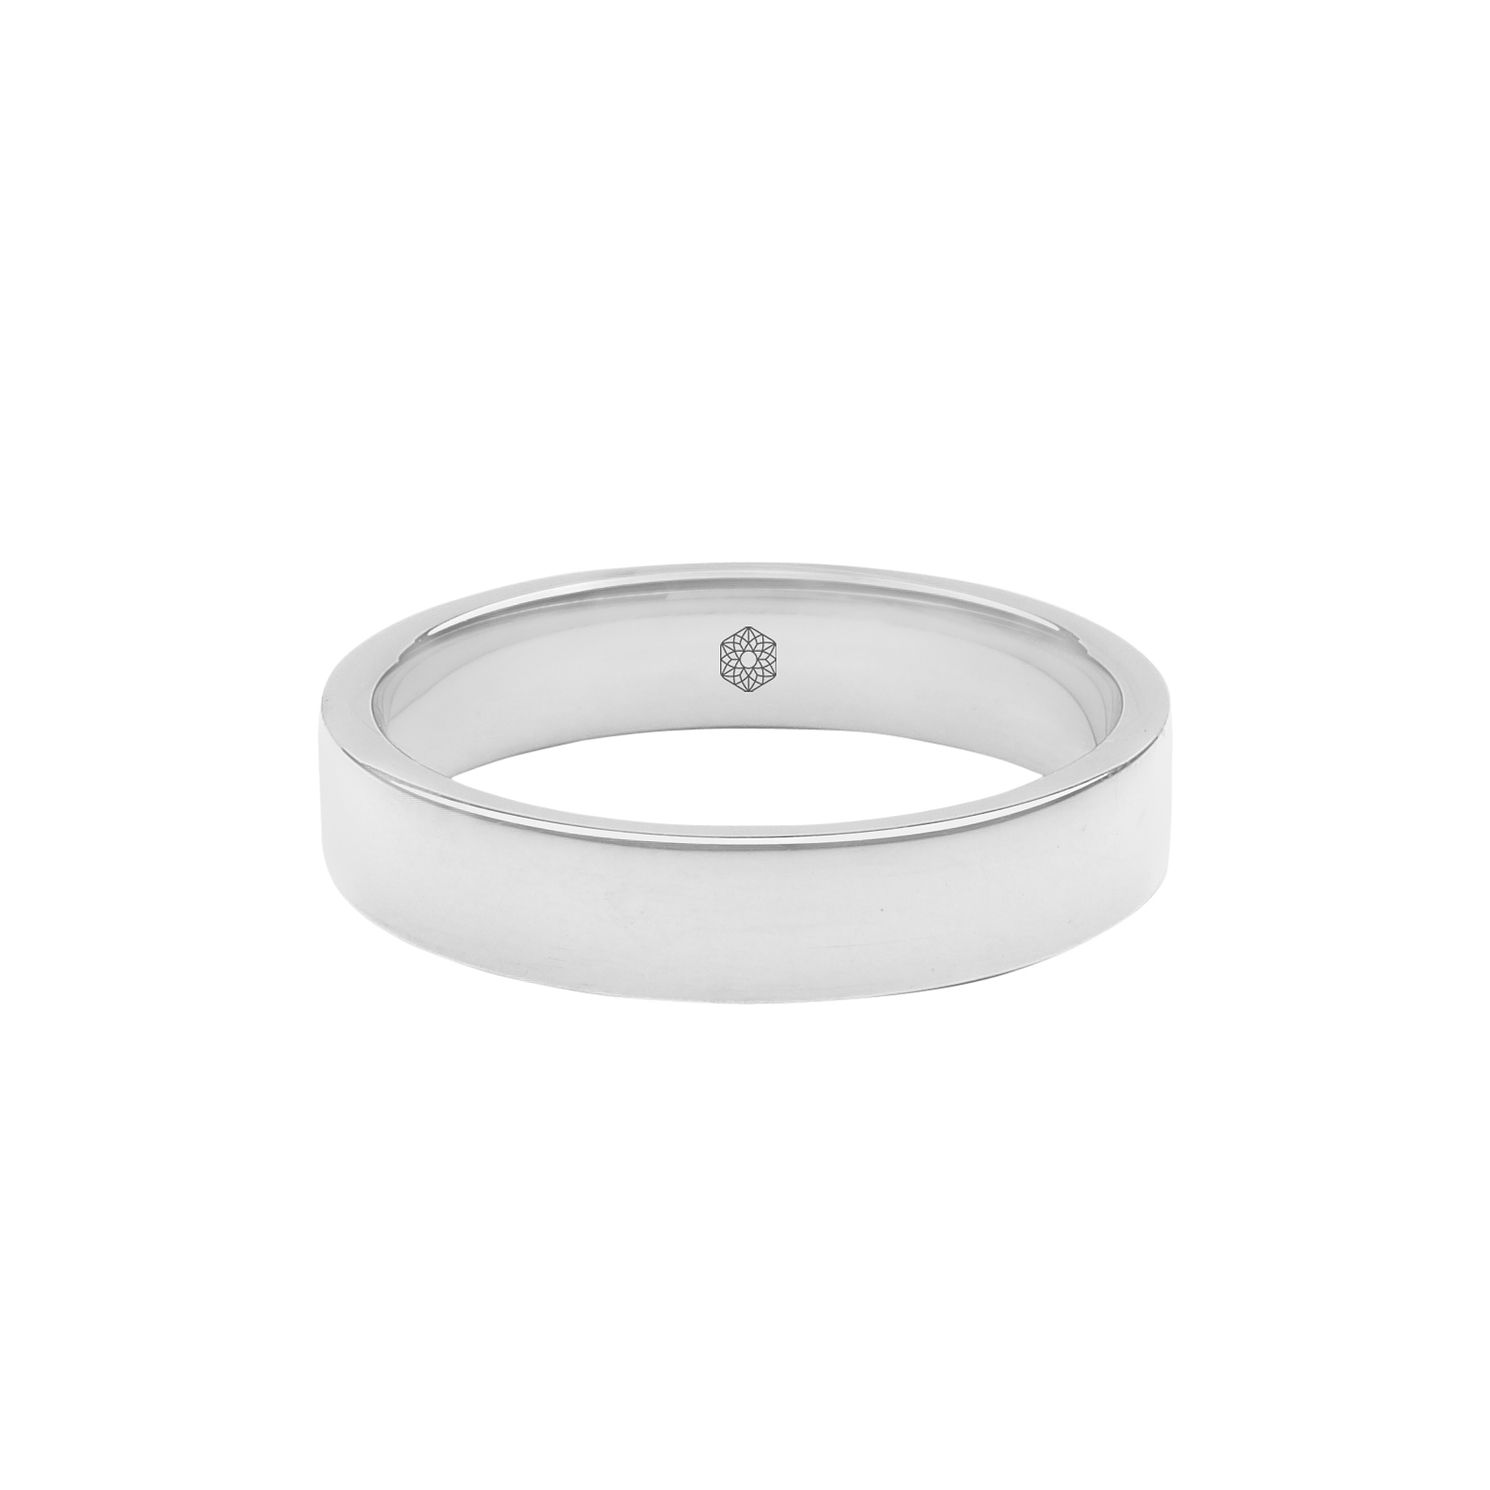 Baird Mint 18ct White Gold Arctic 4mm Flat Ring - Product number 8154597